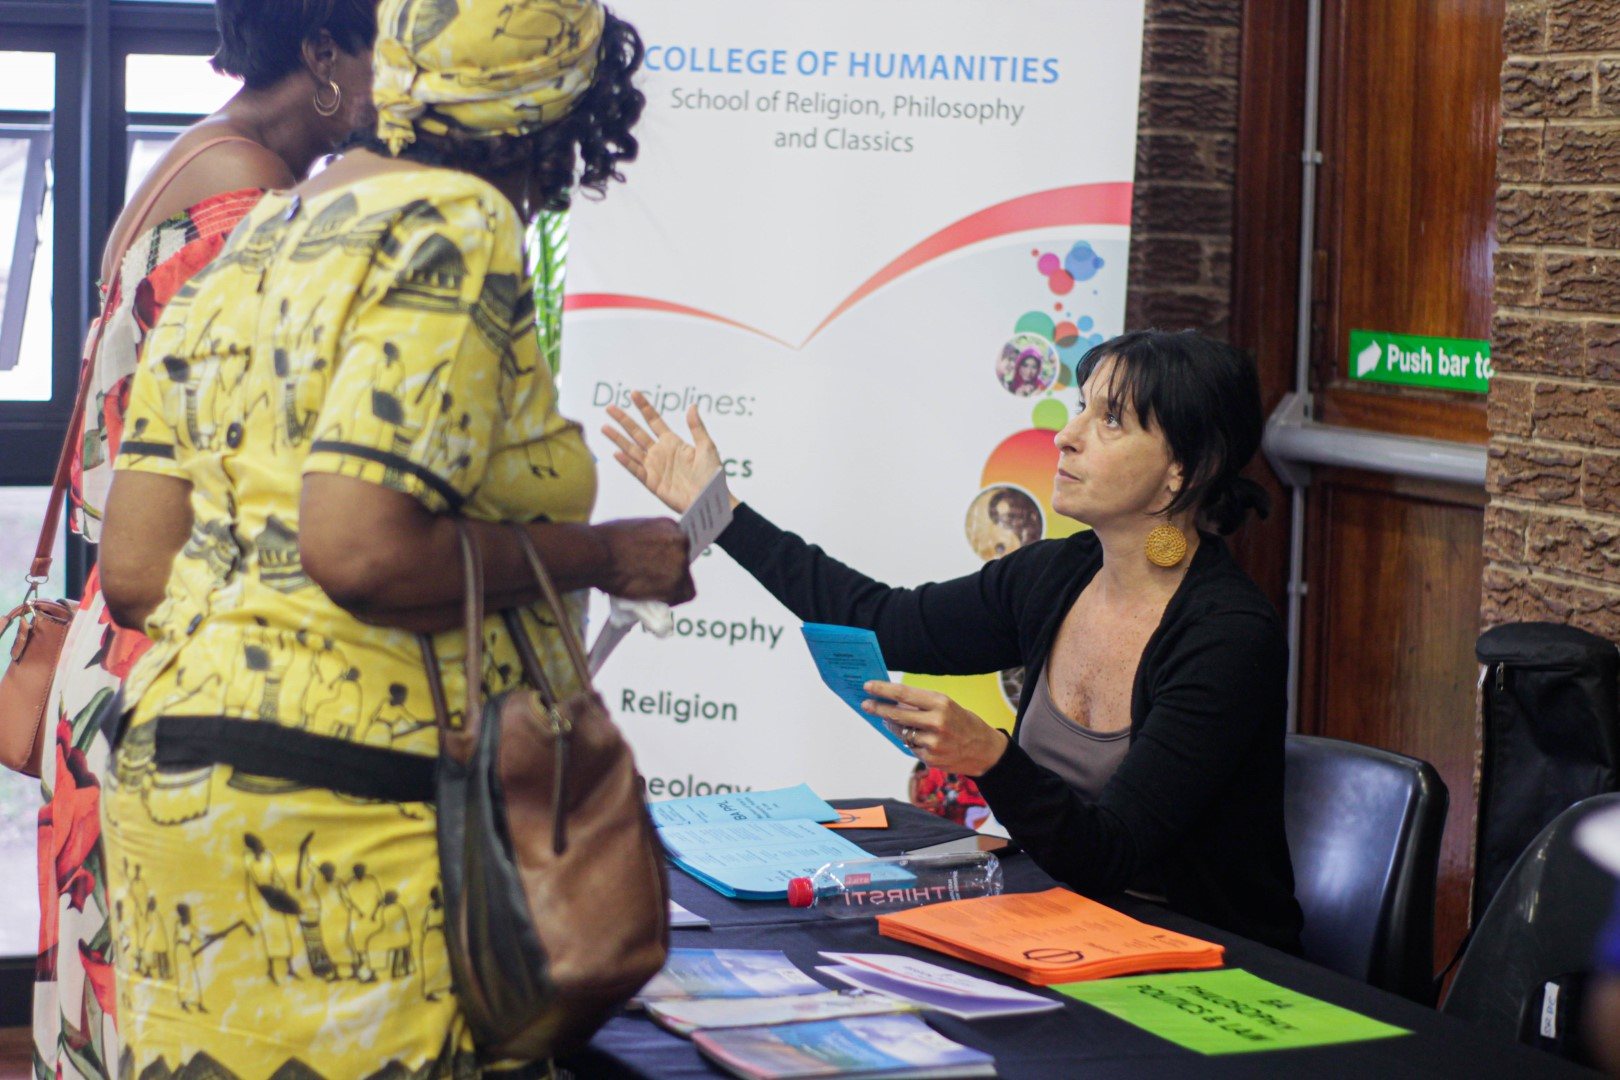 Highlights from the College of Humanities Parents Day and Orientation.